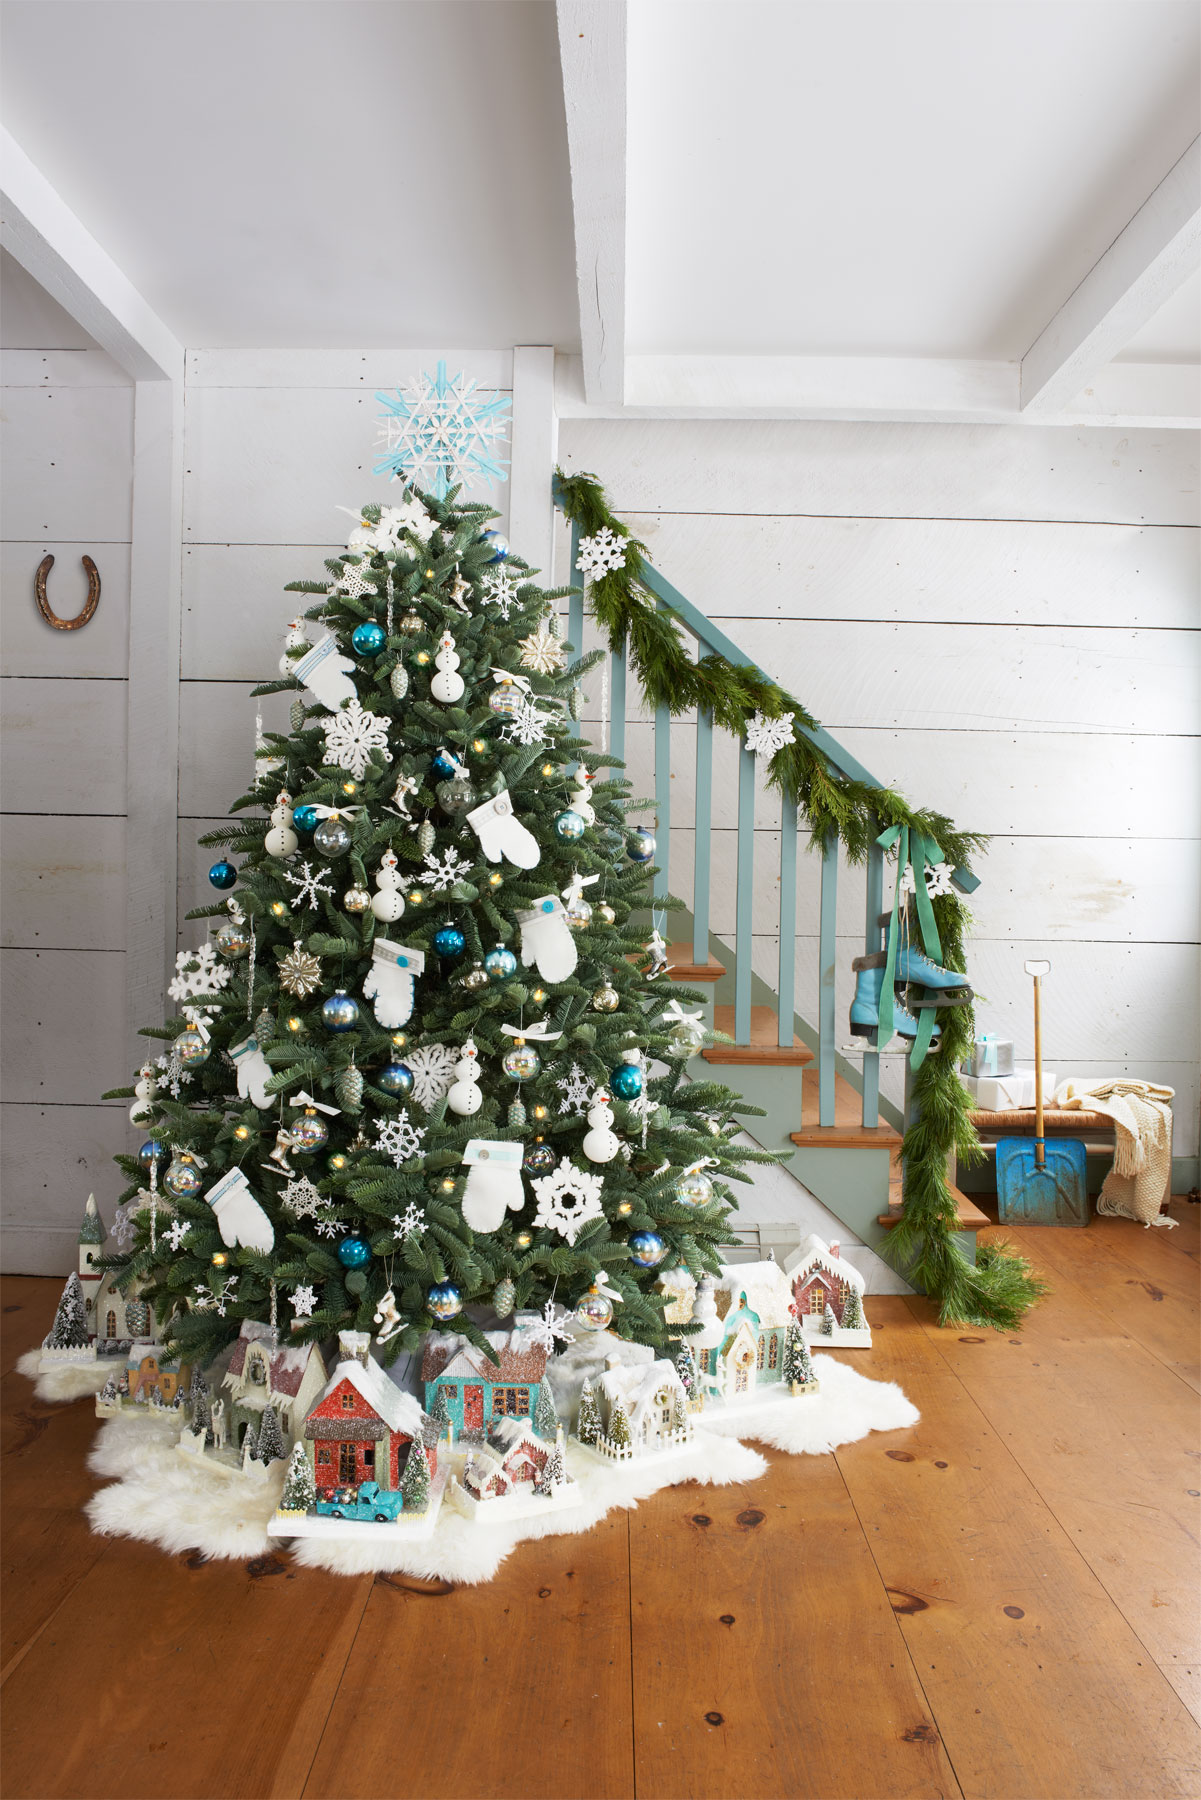 60+ Christmas Tree Decorating Ideas - How to Decorate a ...